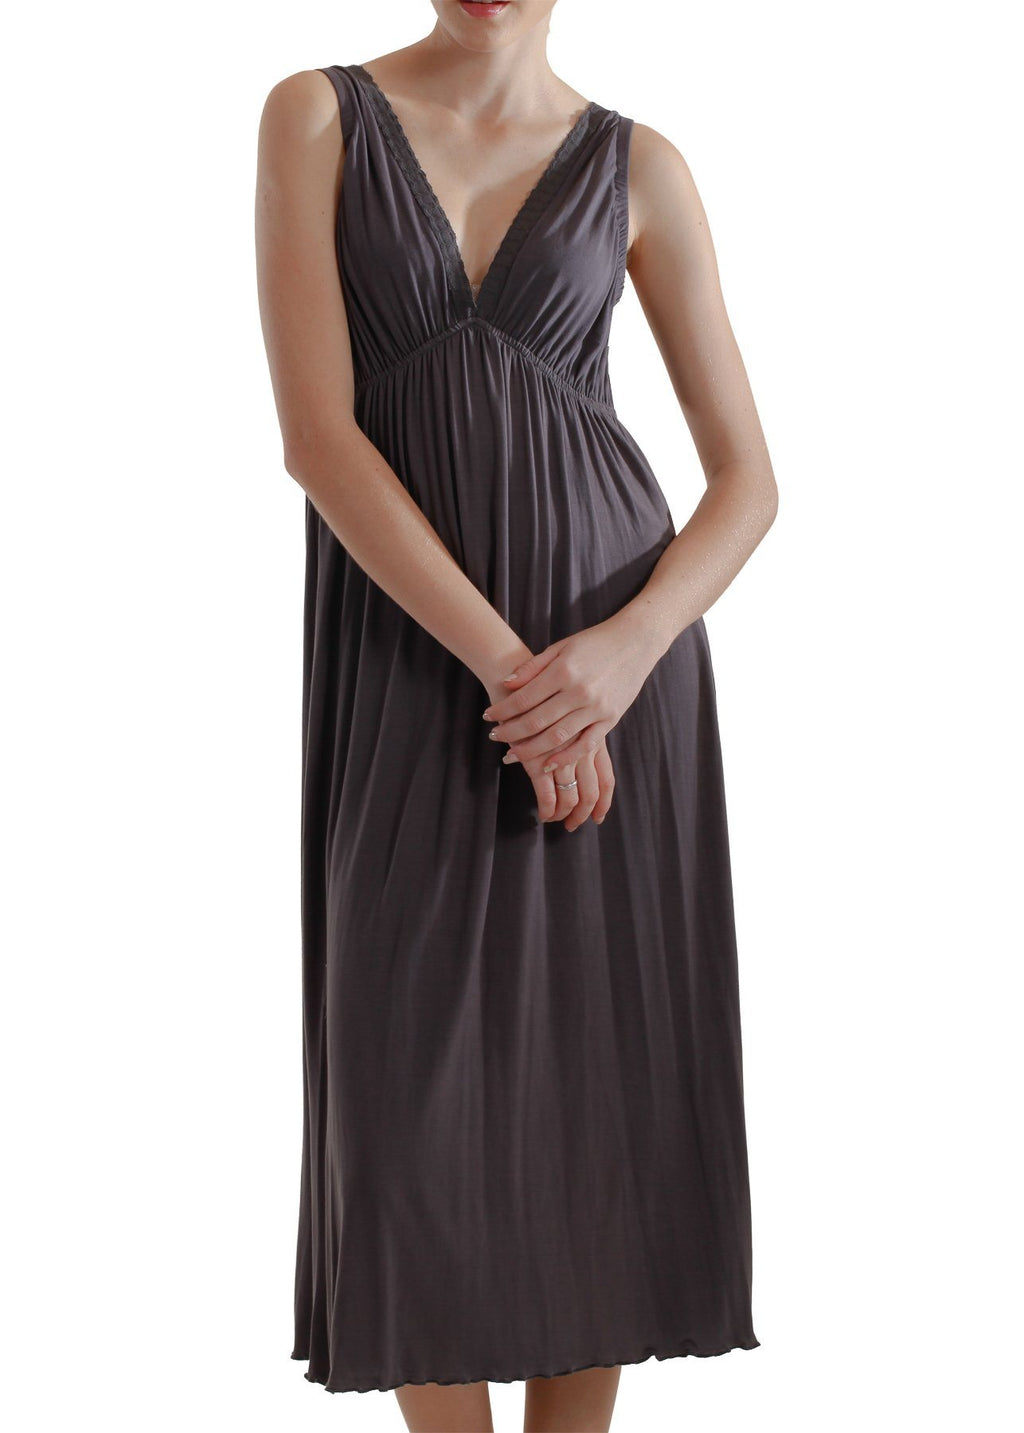 Celia Nightgown - Pewter Mystique Intimates